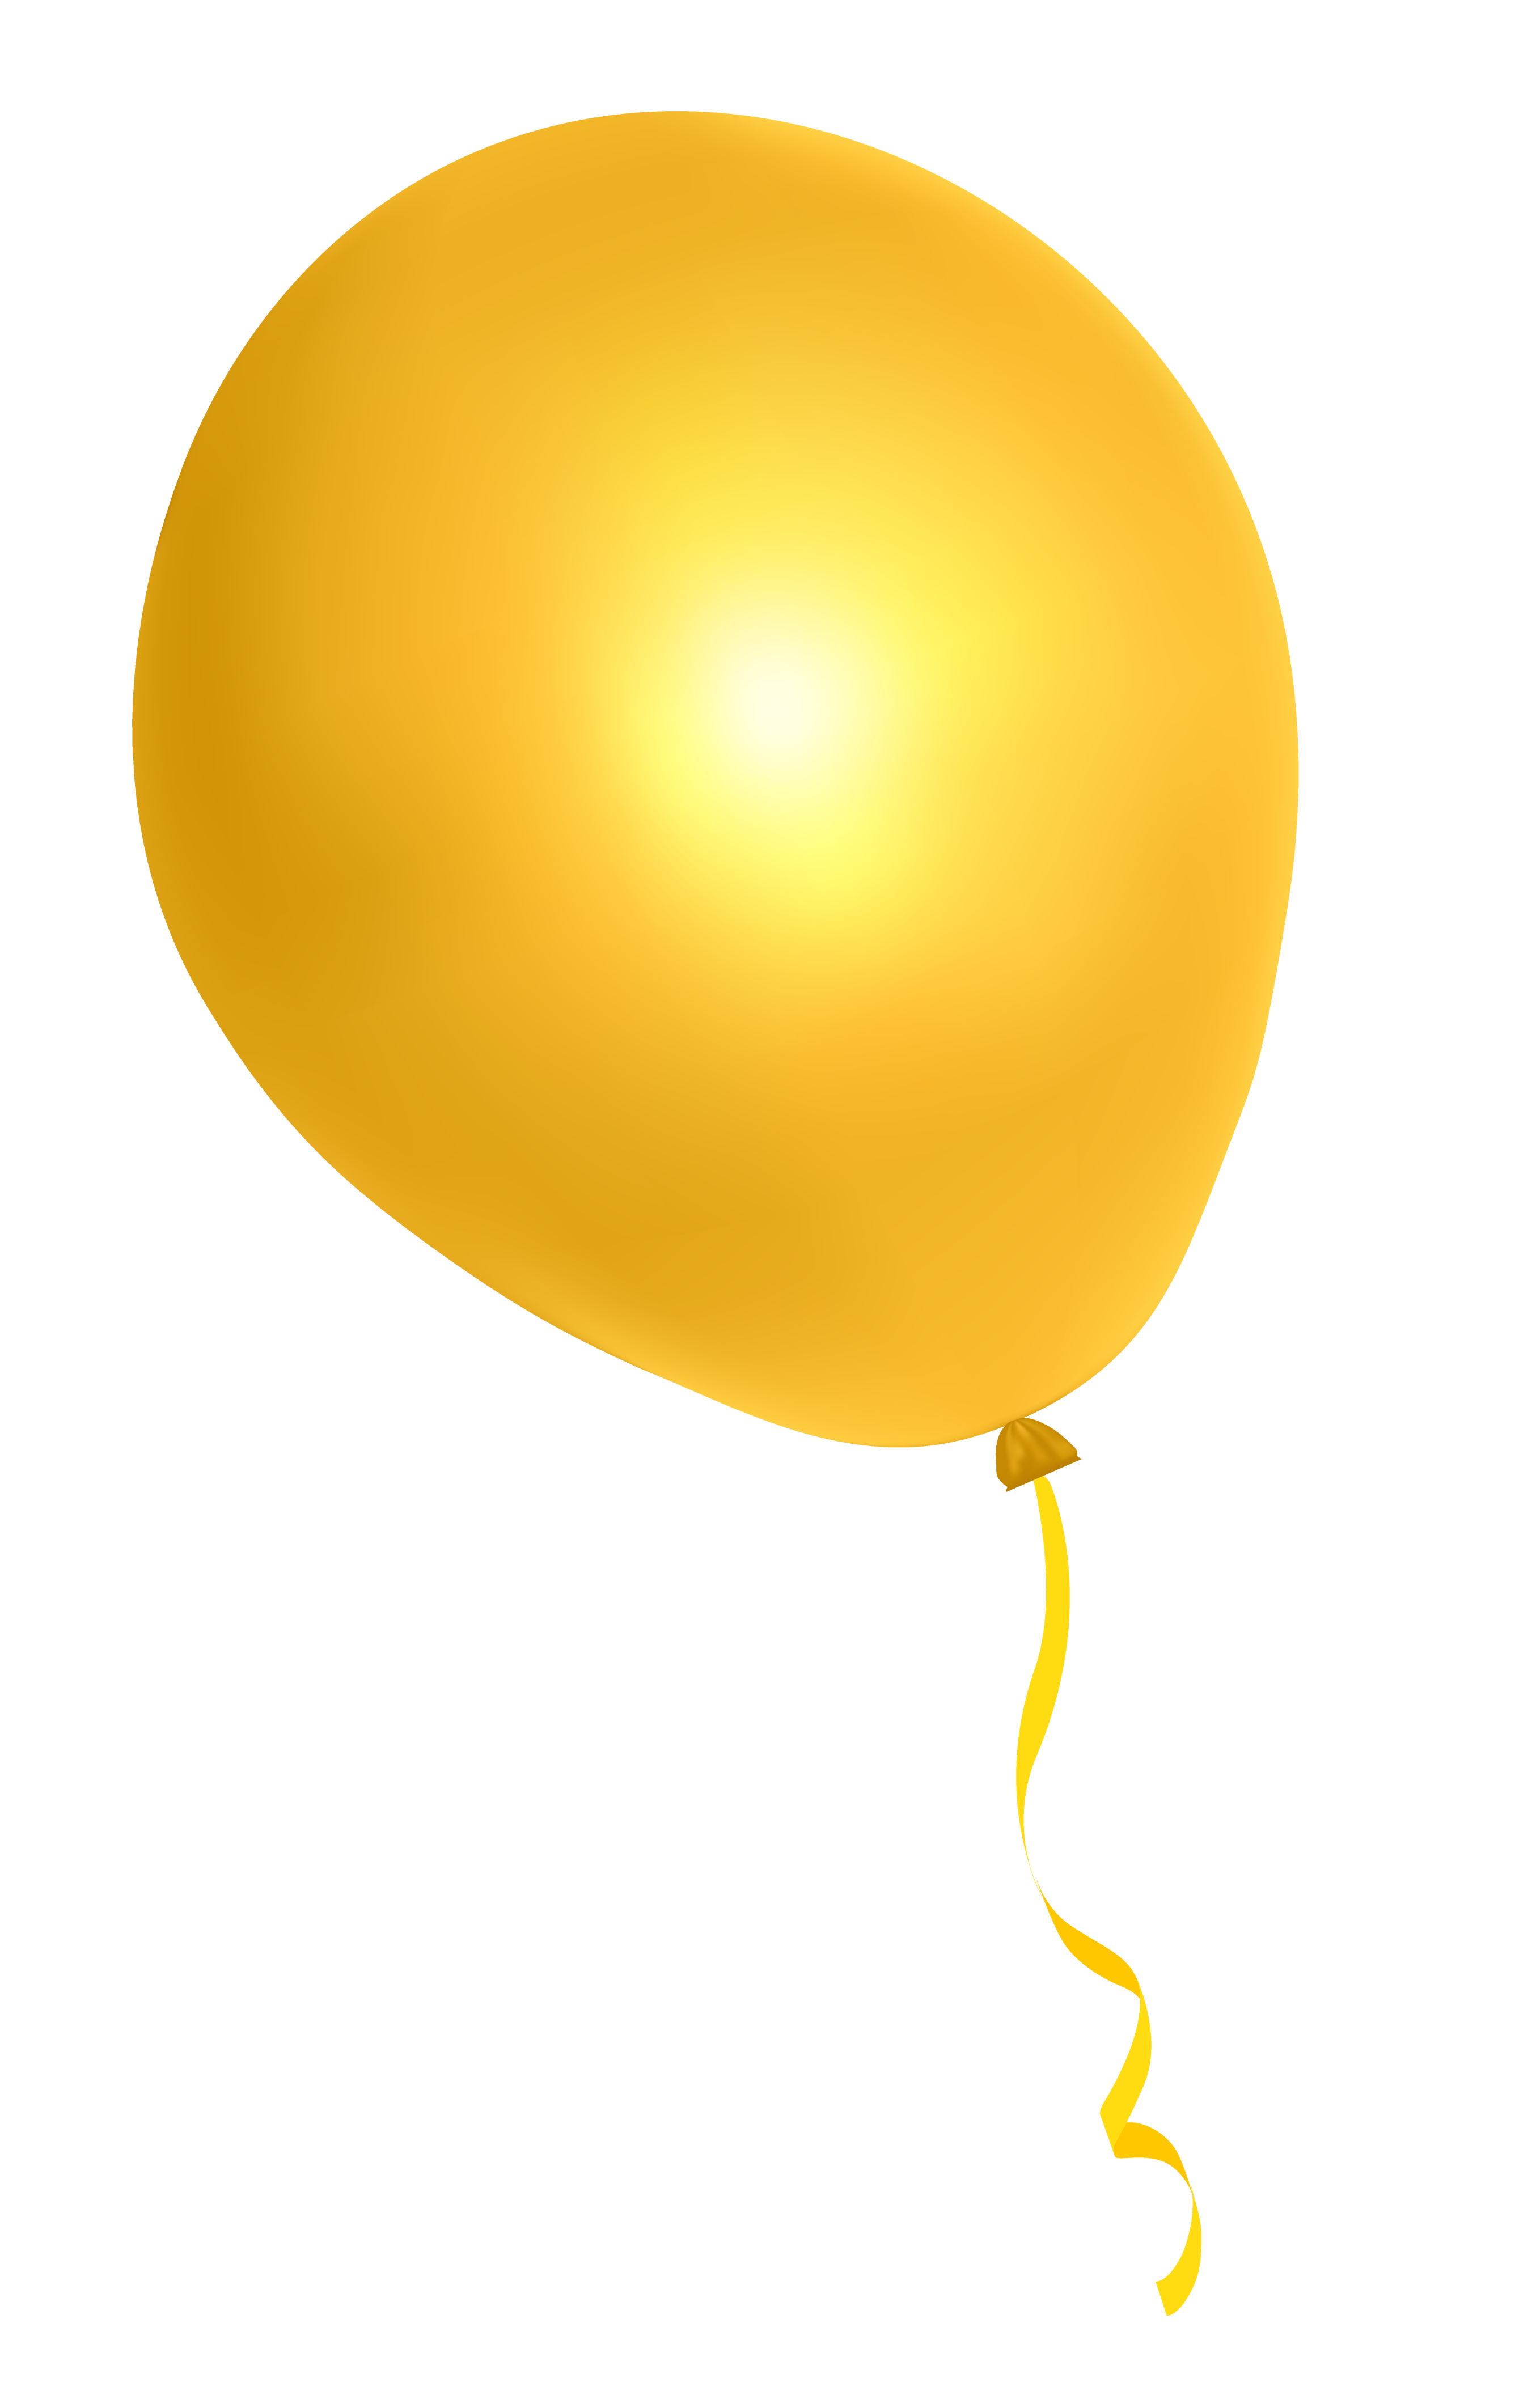 Balloon images png. Yellow image pngpix